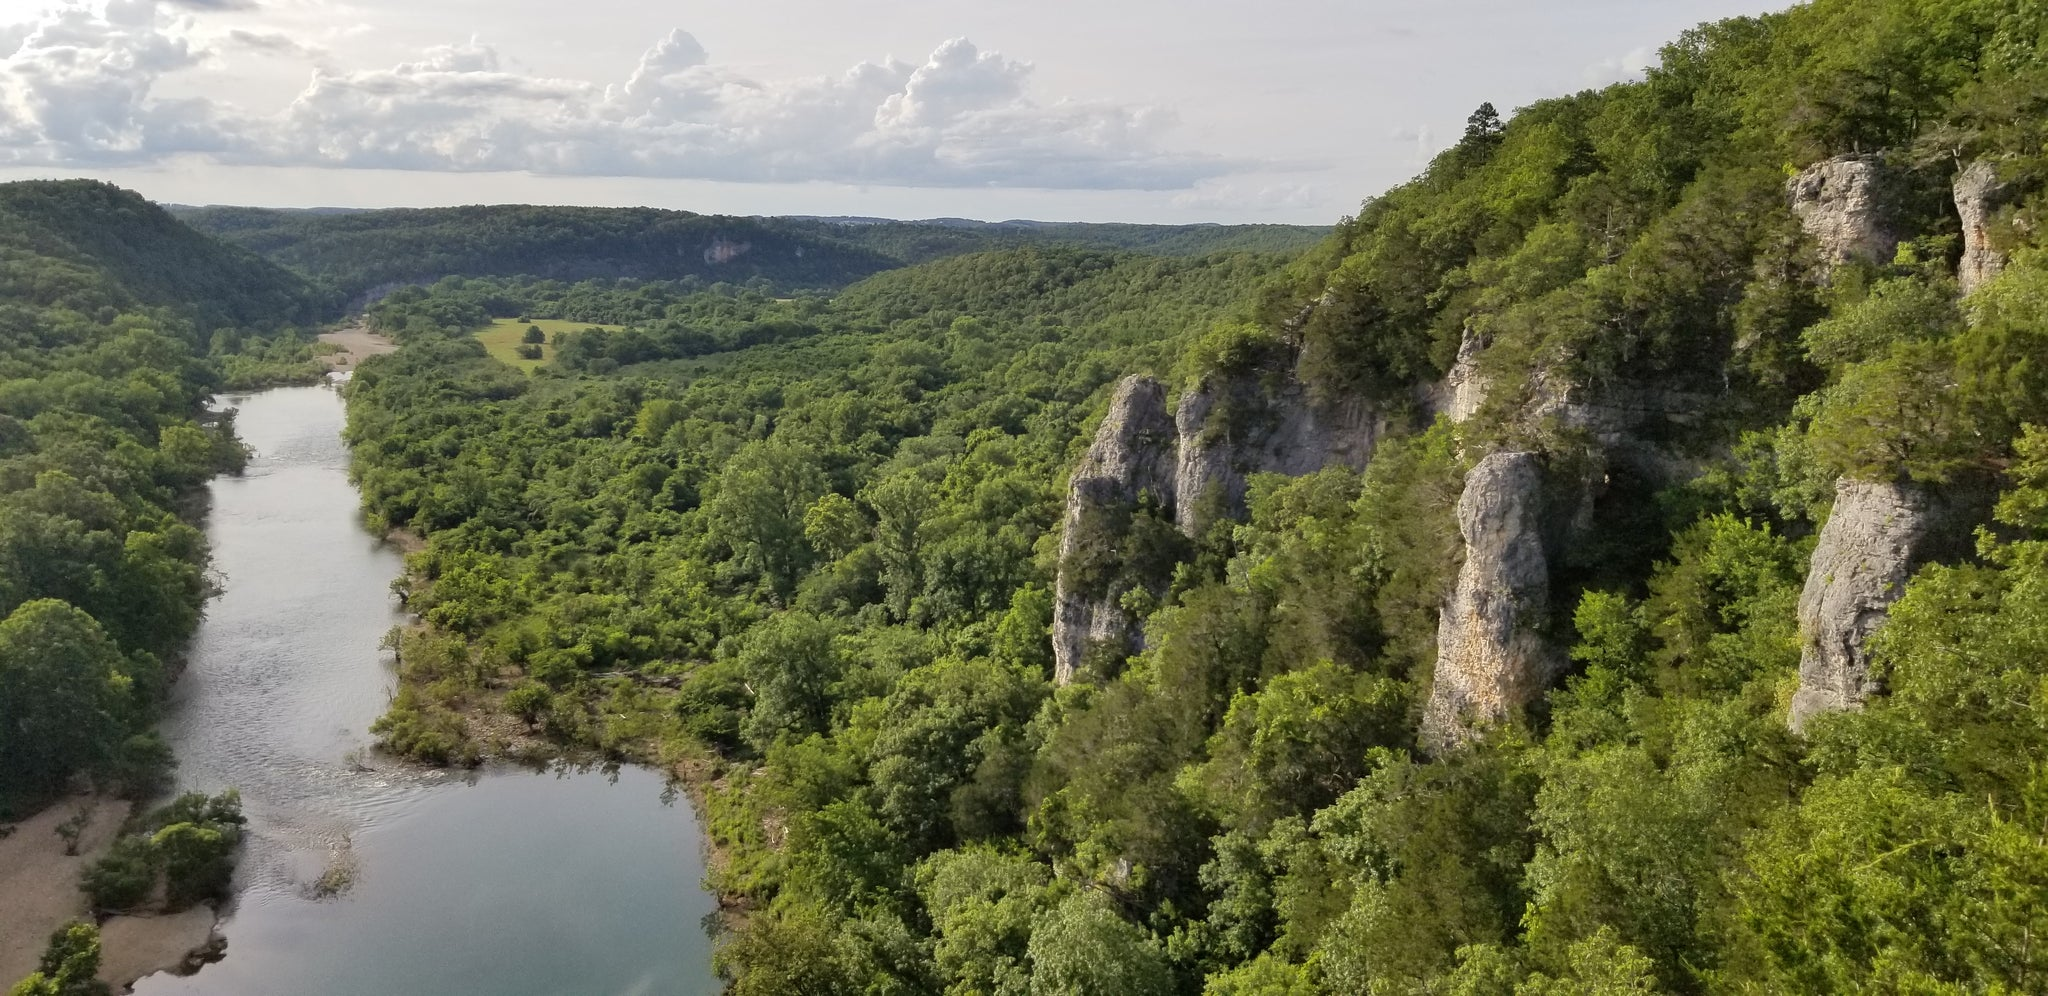 Peter Cave Road Overlook - Buffalo National River - Arkansas High Country Route